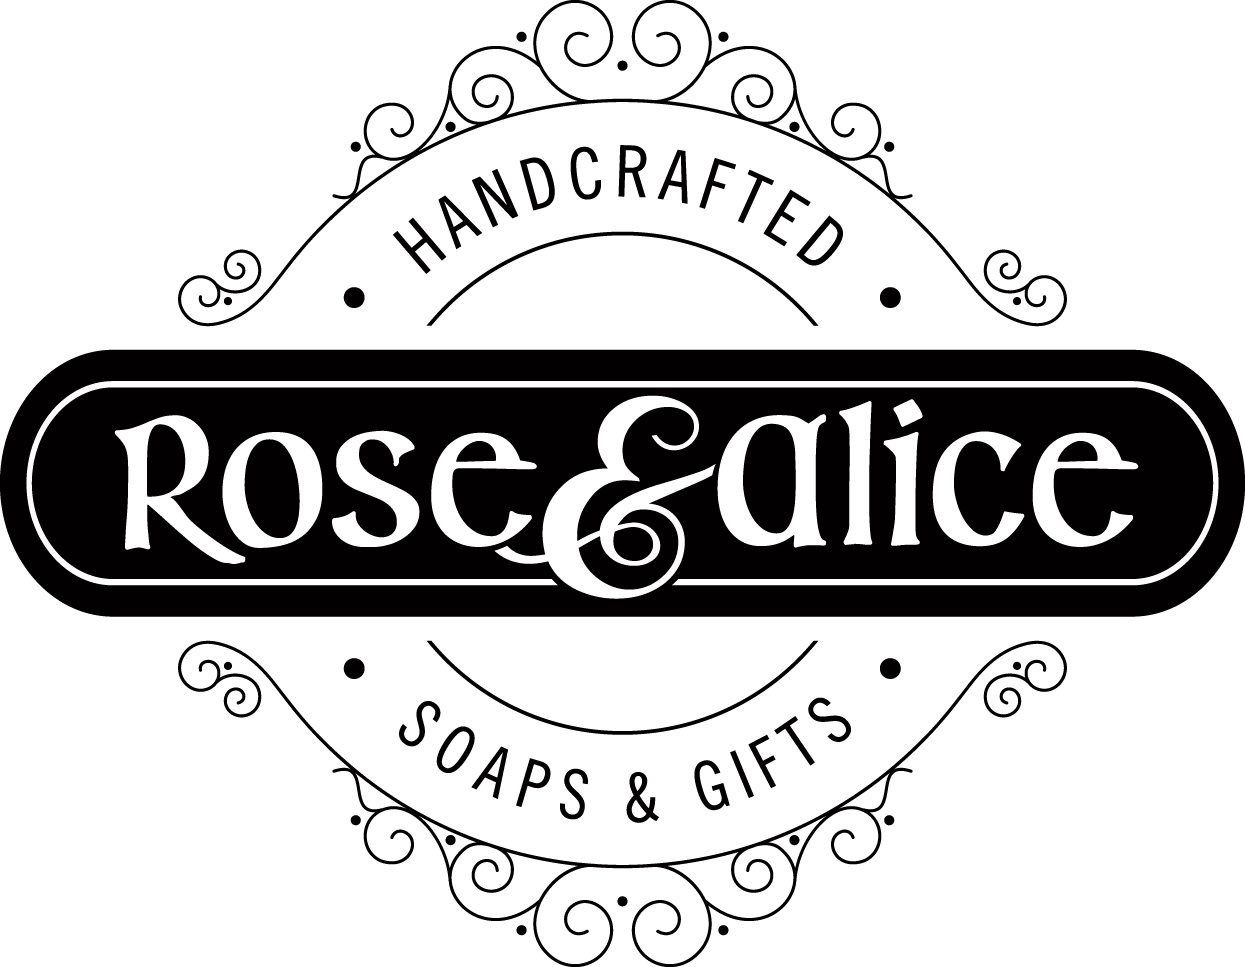 Rose & Alice Handcrafted Soaps and Gifts